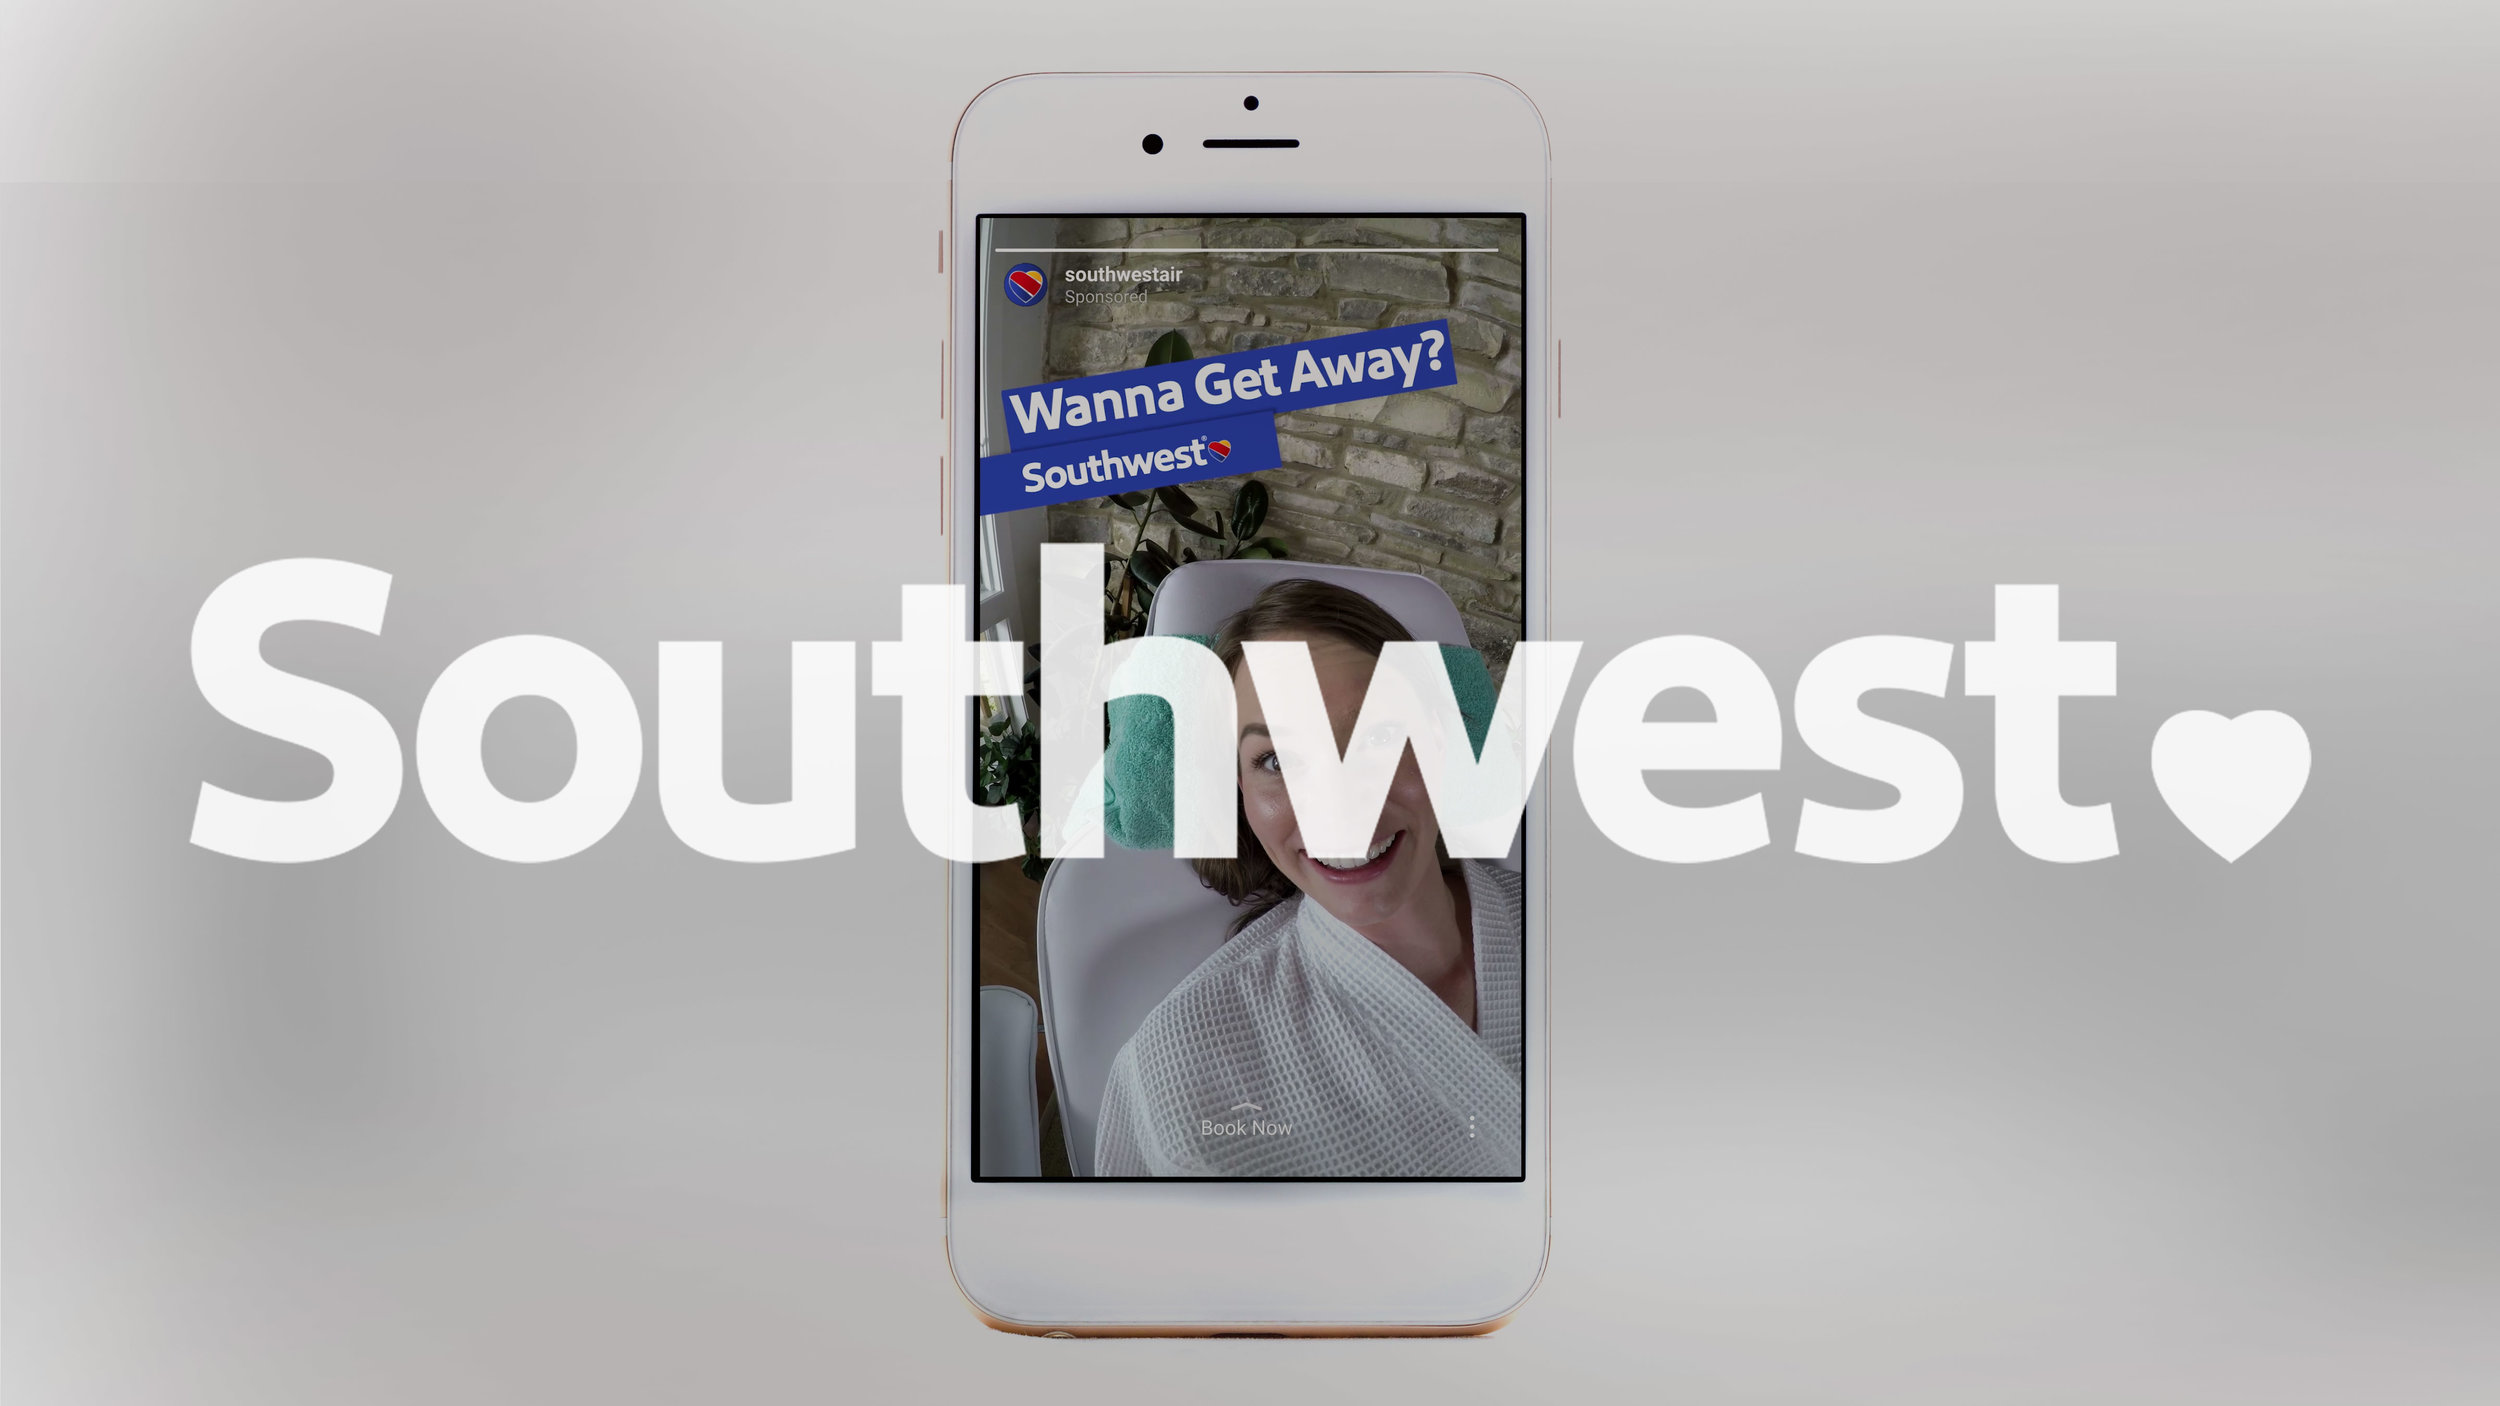 southwest wanna get away thumbnail.jpg